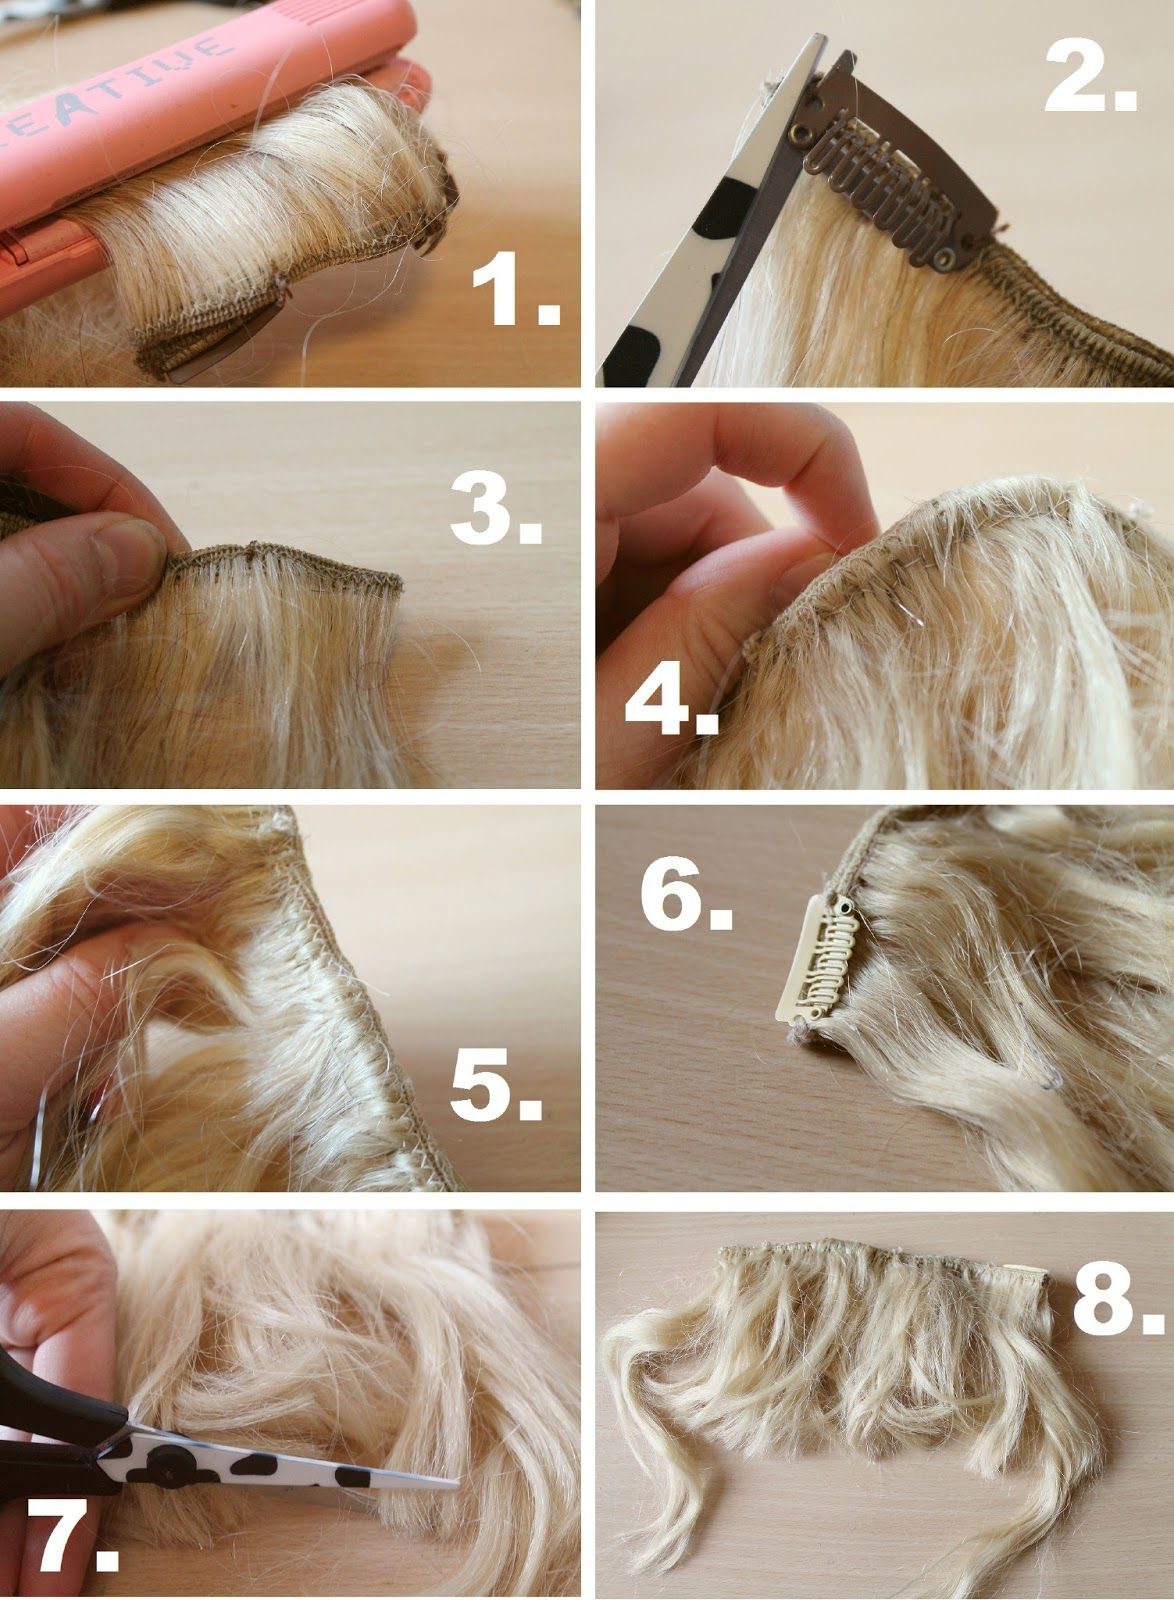 Diy Clip In Hair Extensions : extensions, Bangs, [guest, Post], Extension, Clips,, Extensions, Tutorial